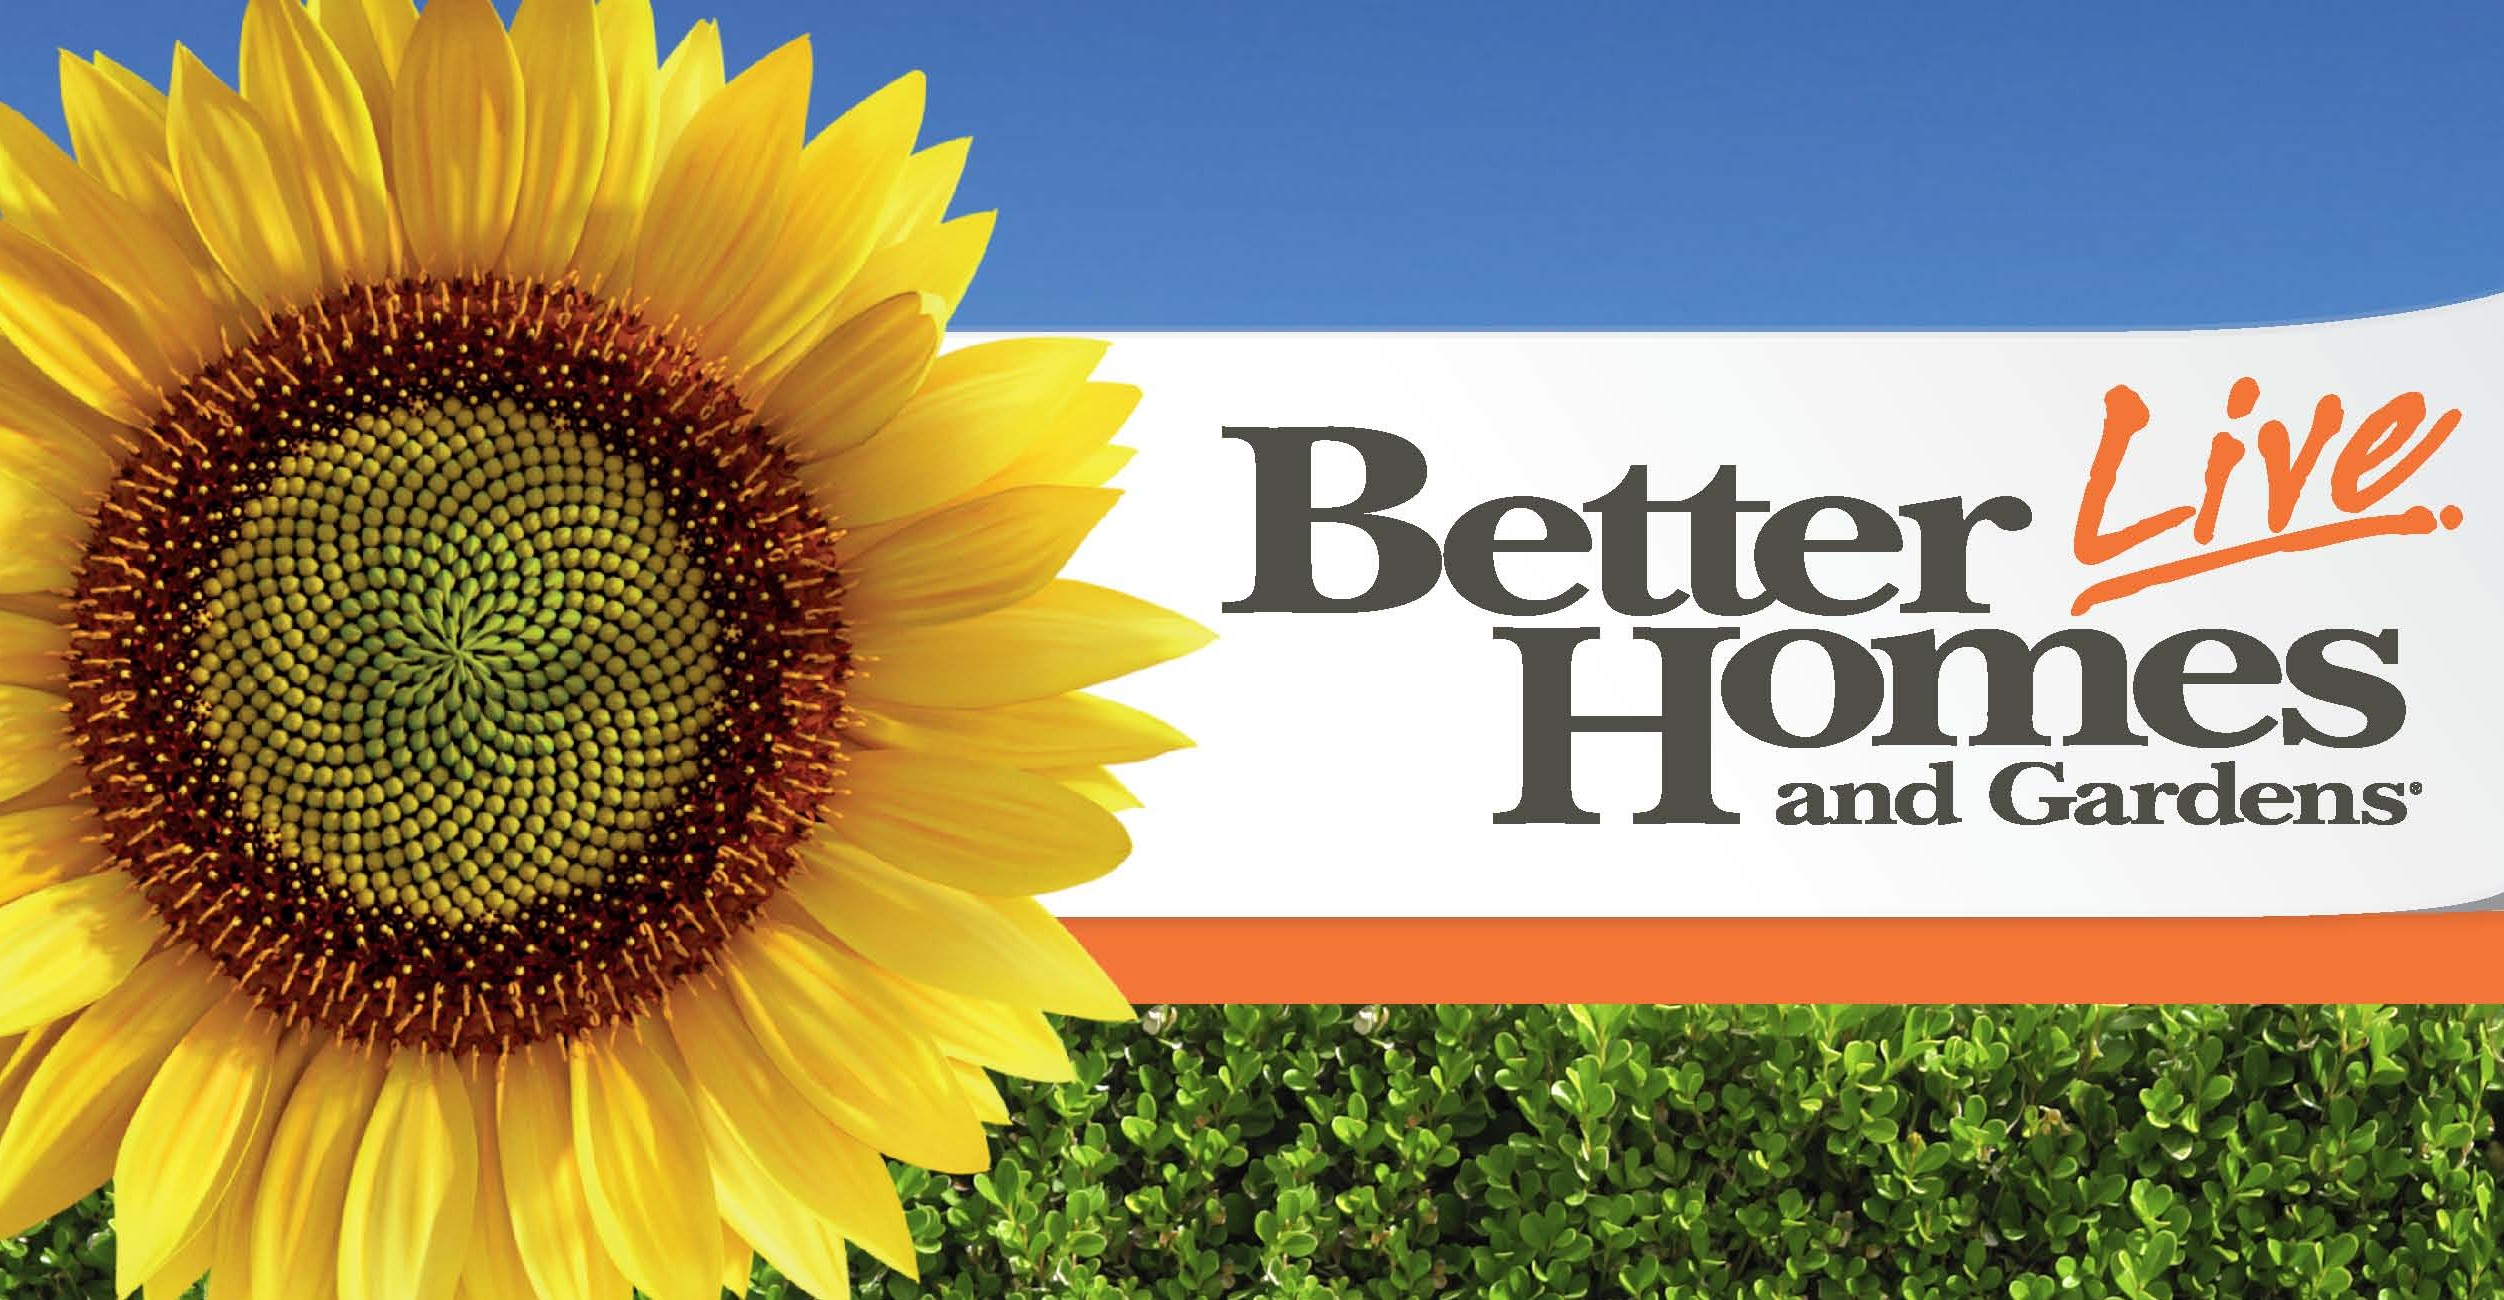 Agent99 Wins Pr For Better Homes Gardens Live Shows B T: better homes and gardens channel 7